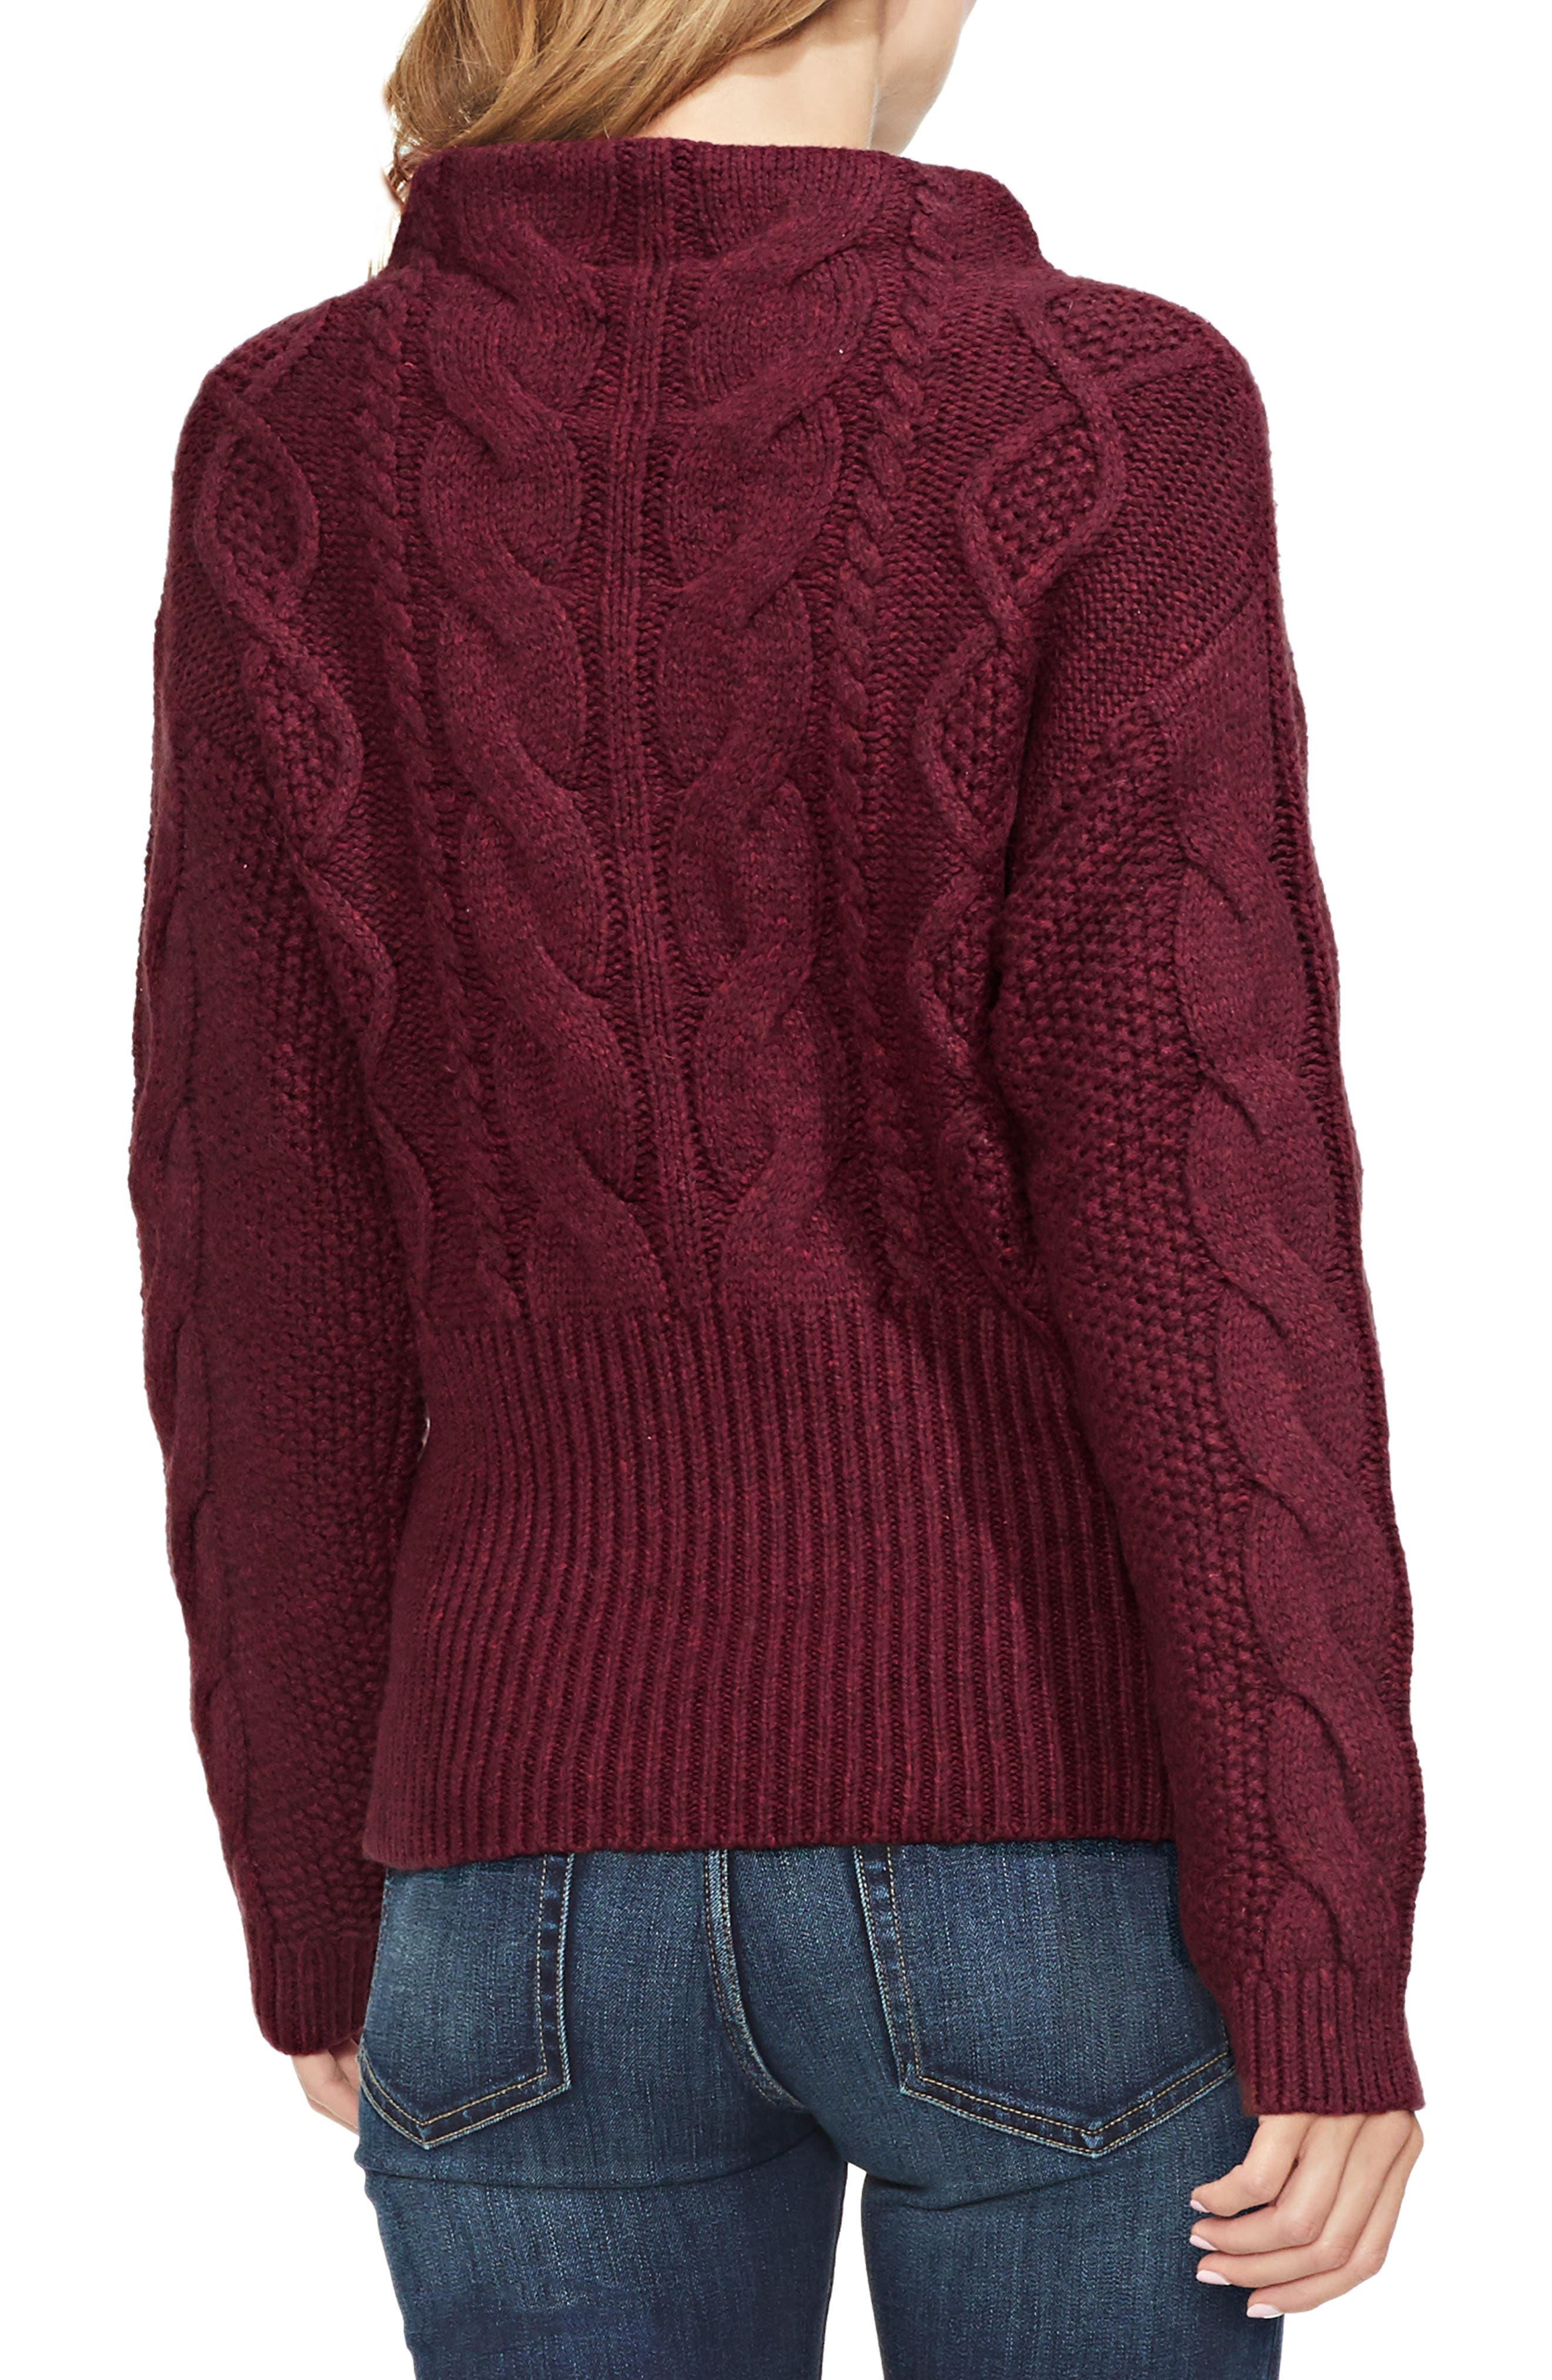 Cotton Blend Cable Knit Sweater,                             Alternate thumbnail 3, color,                             MANOR RED